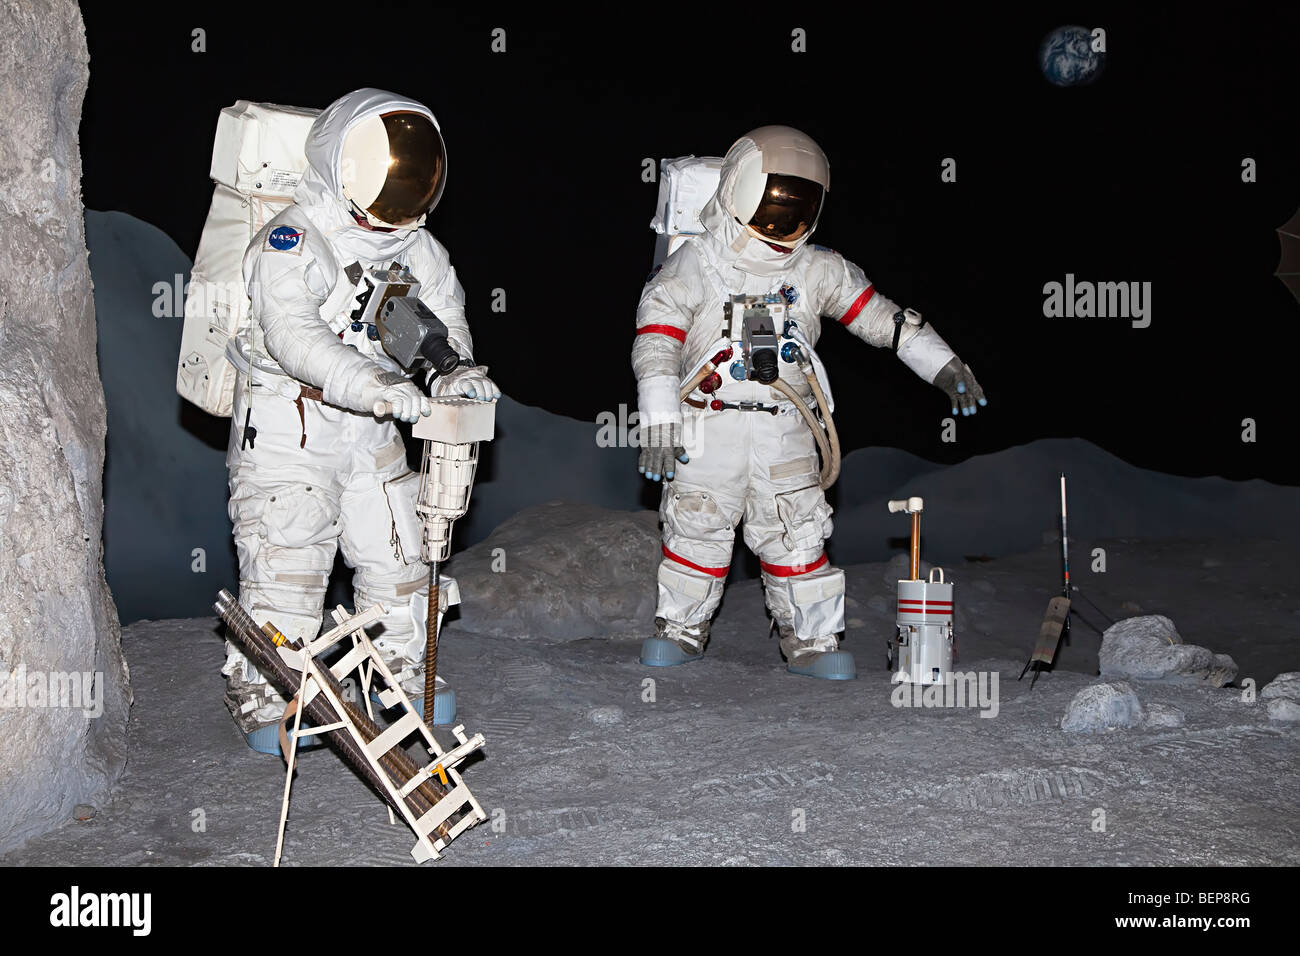 astronauts to go to moon - photo #15